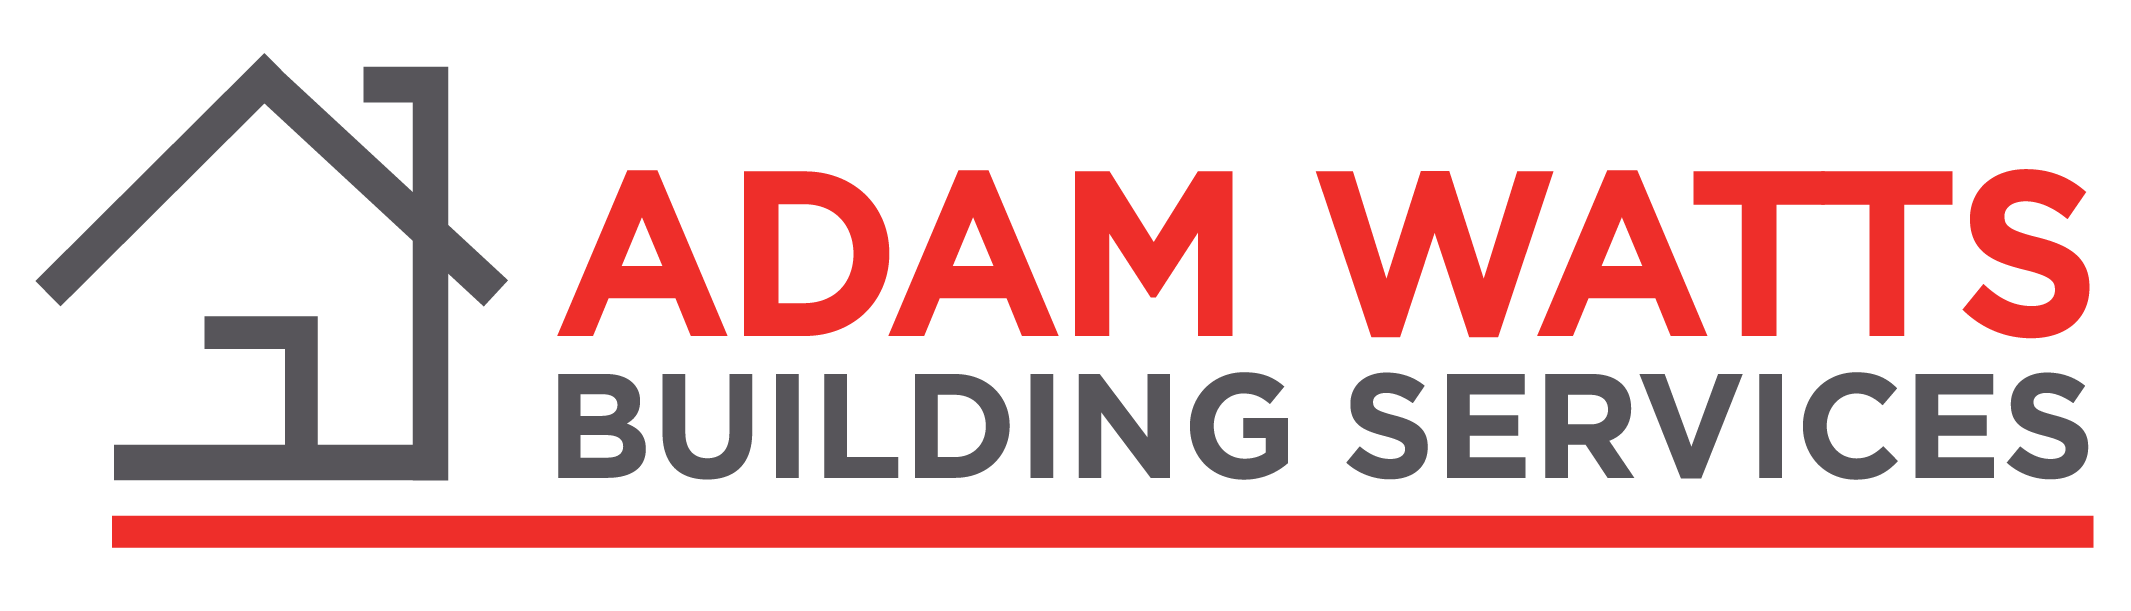 Adam Watts Building Services